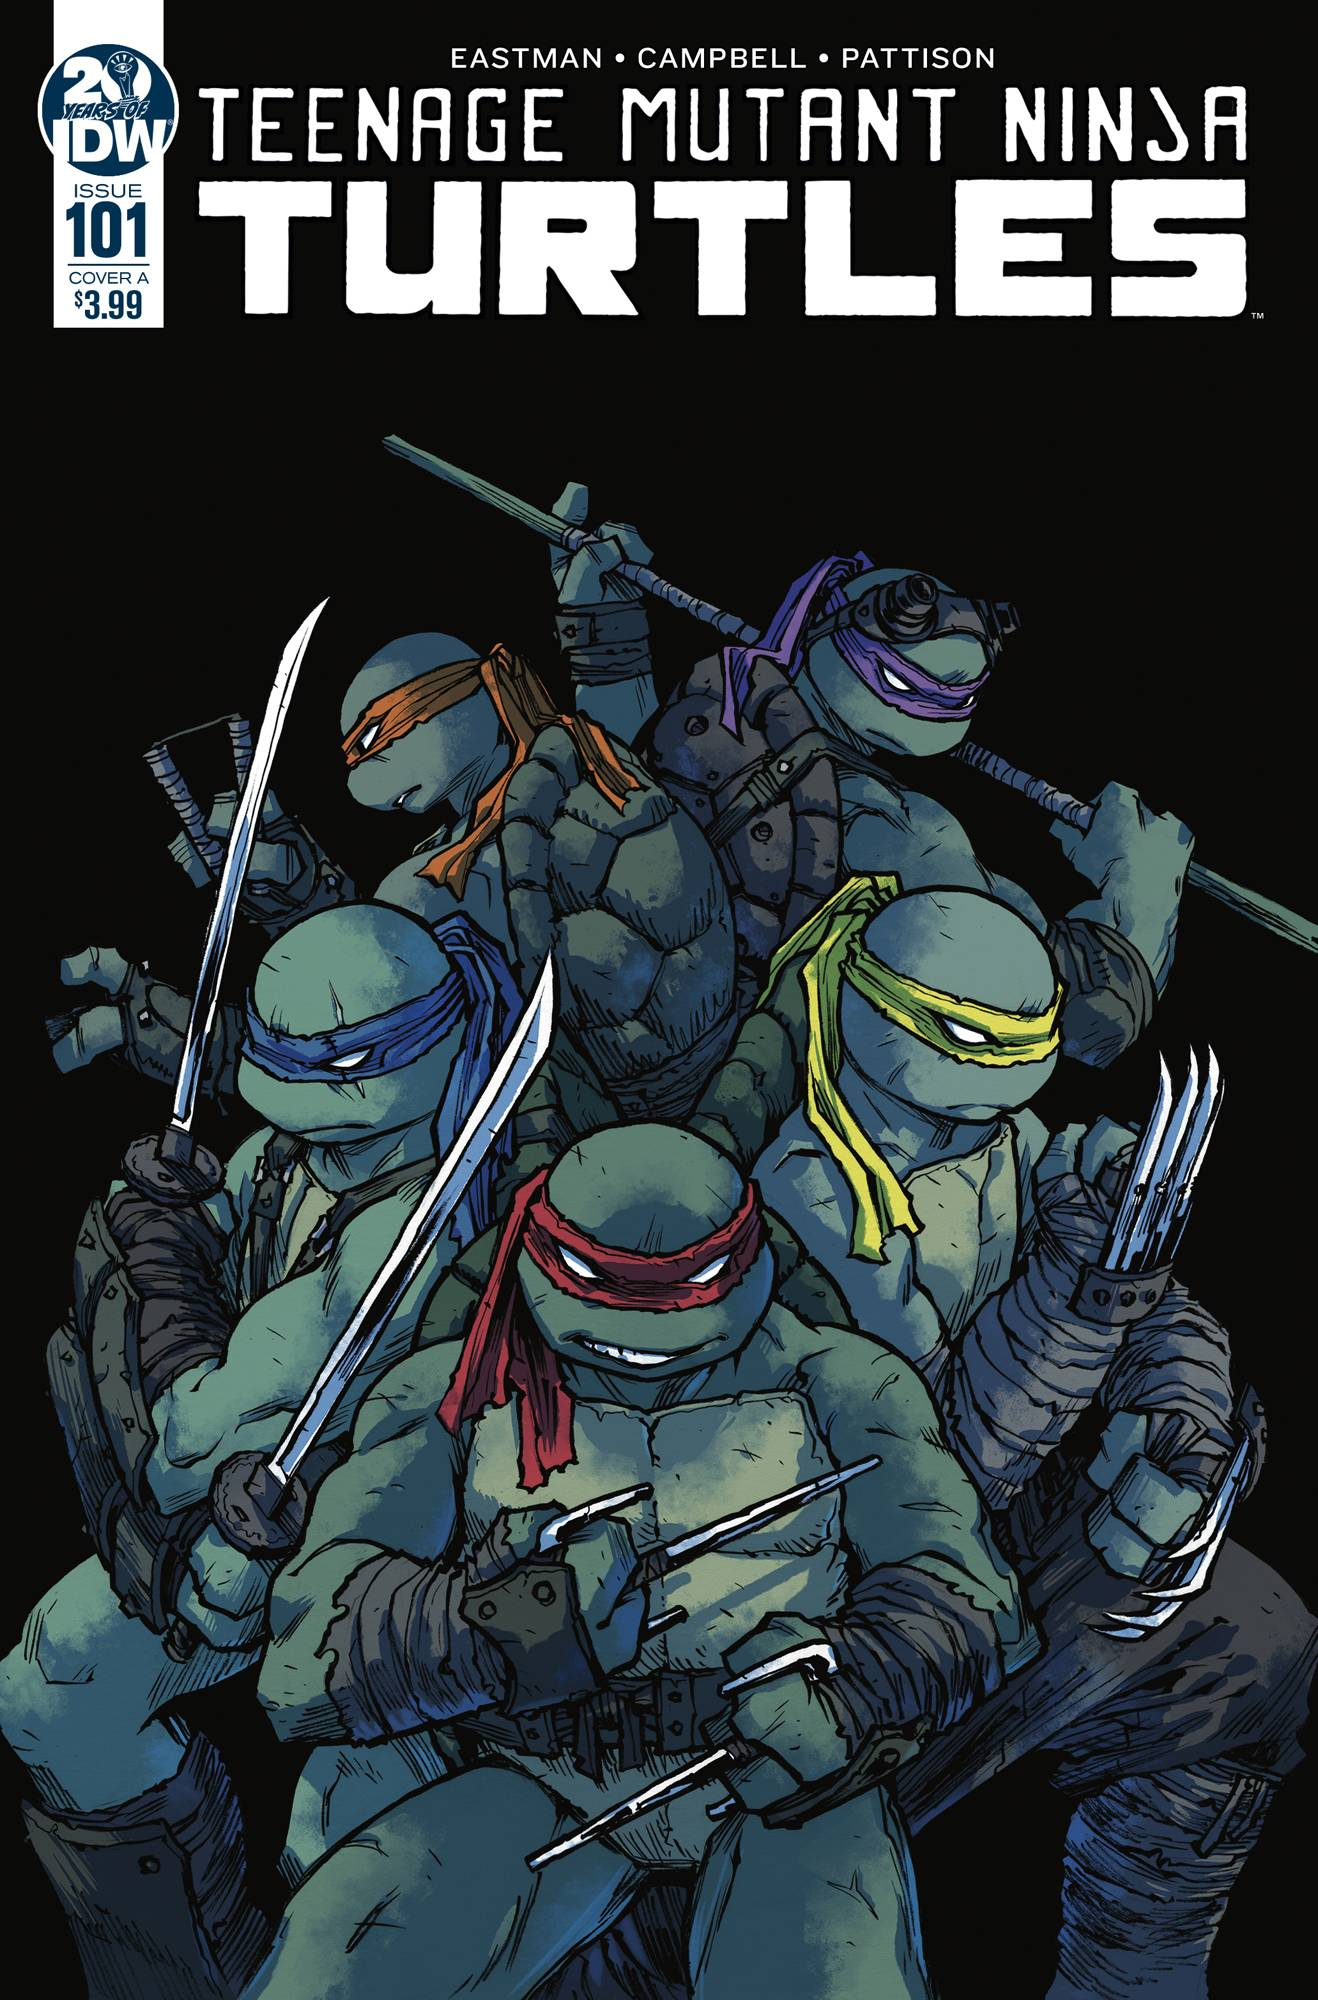 TMNT ONGOING #101 CVR A CAMPBELL